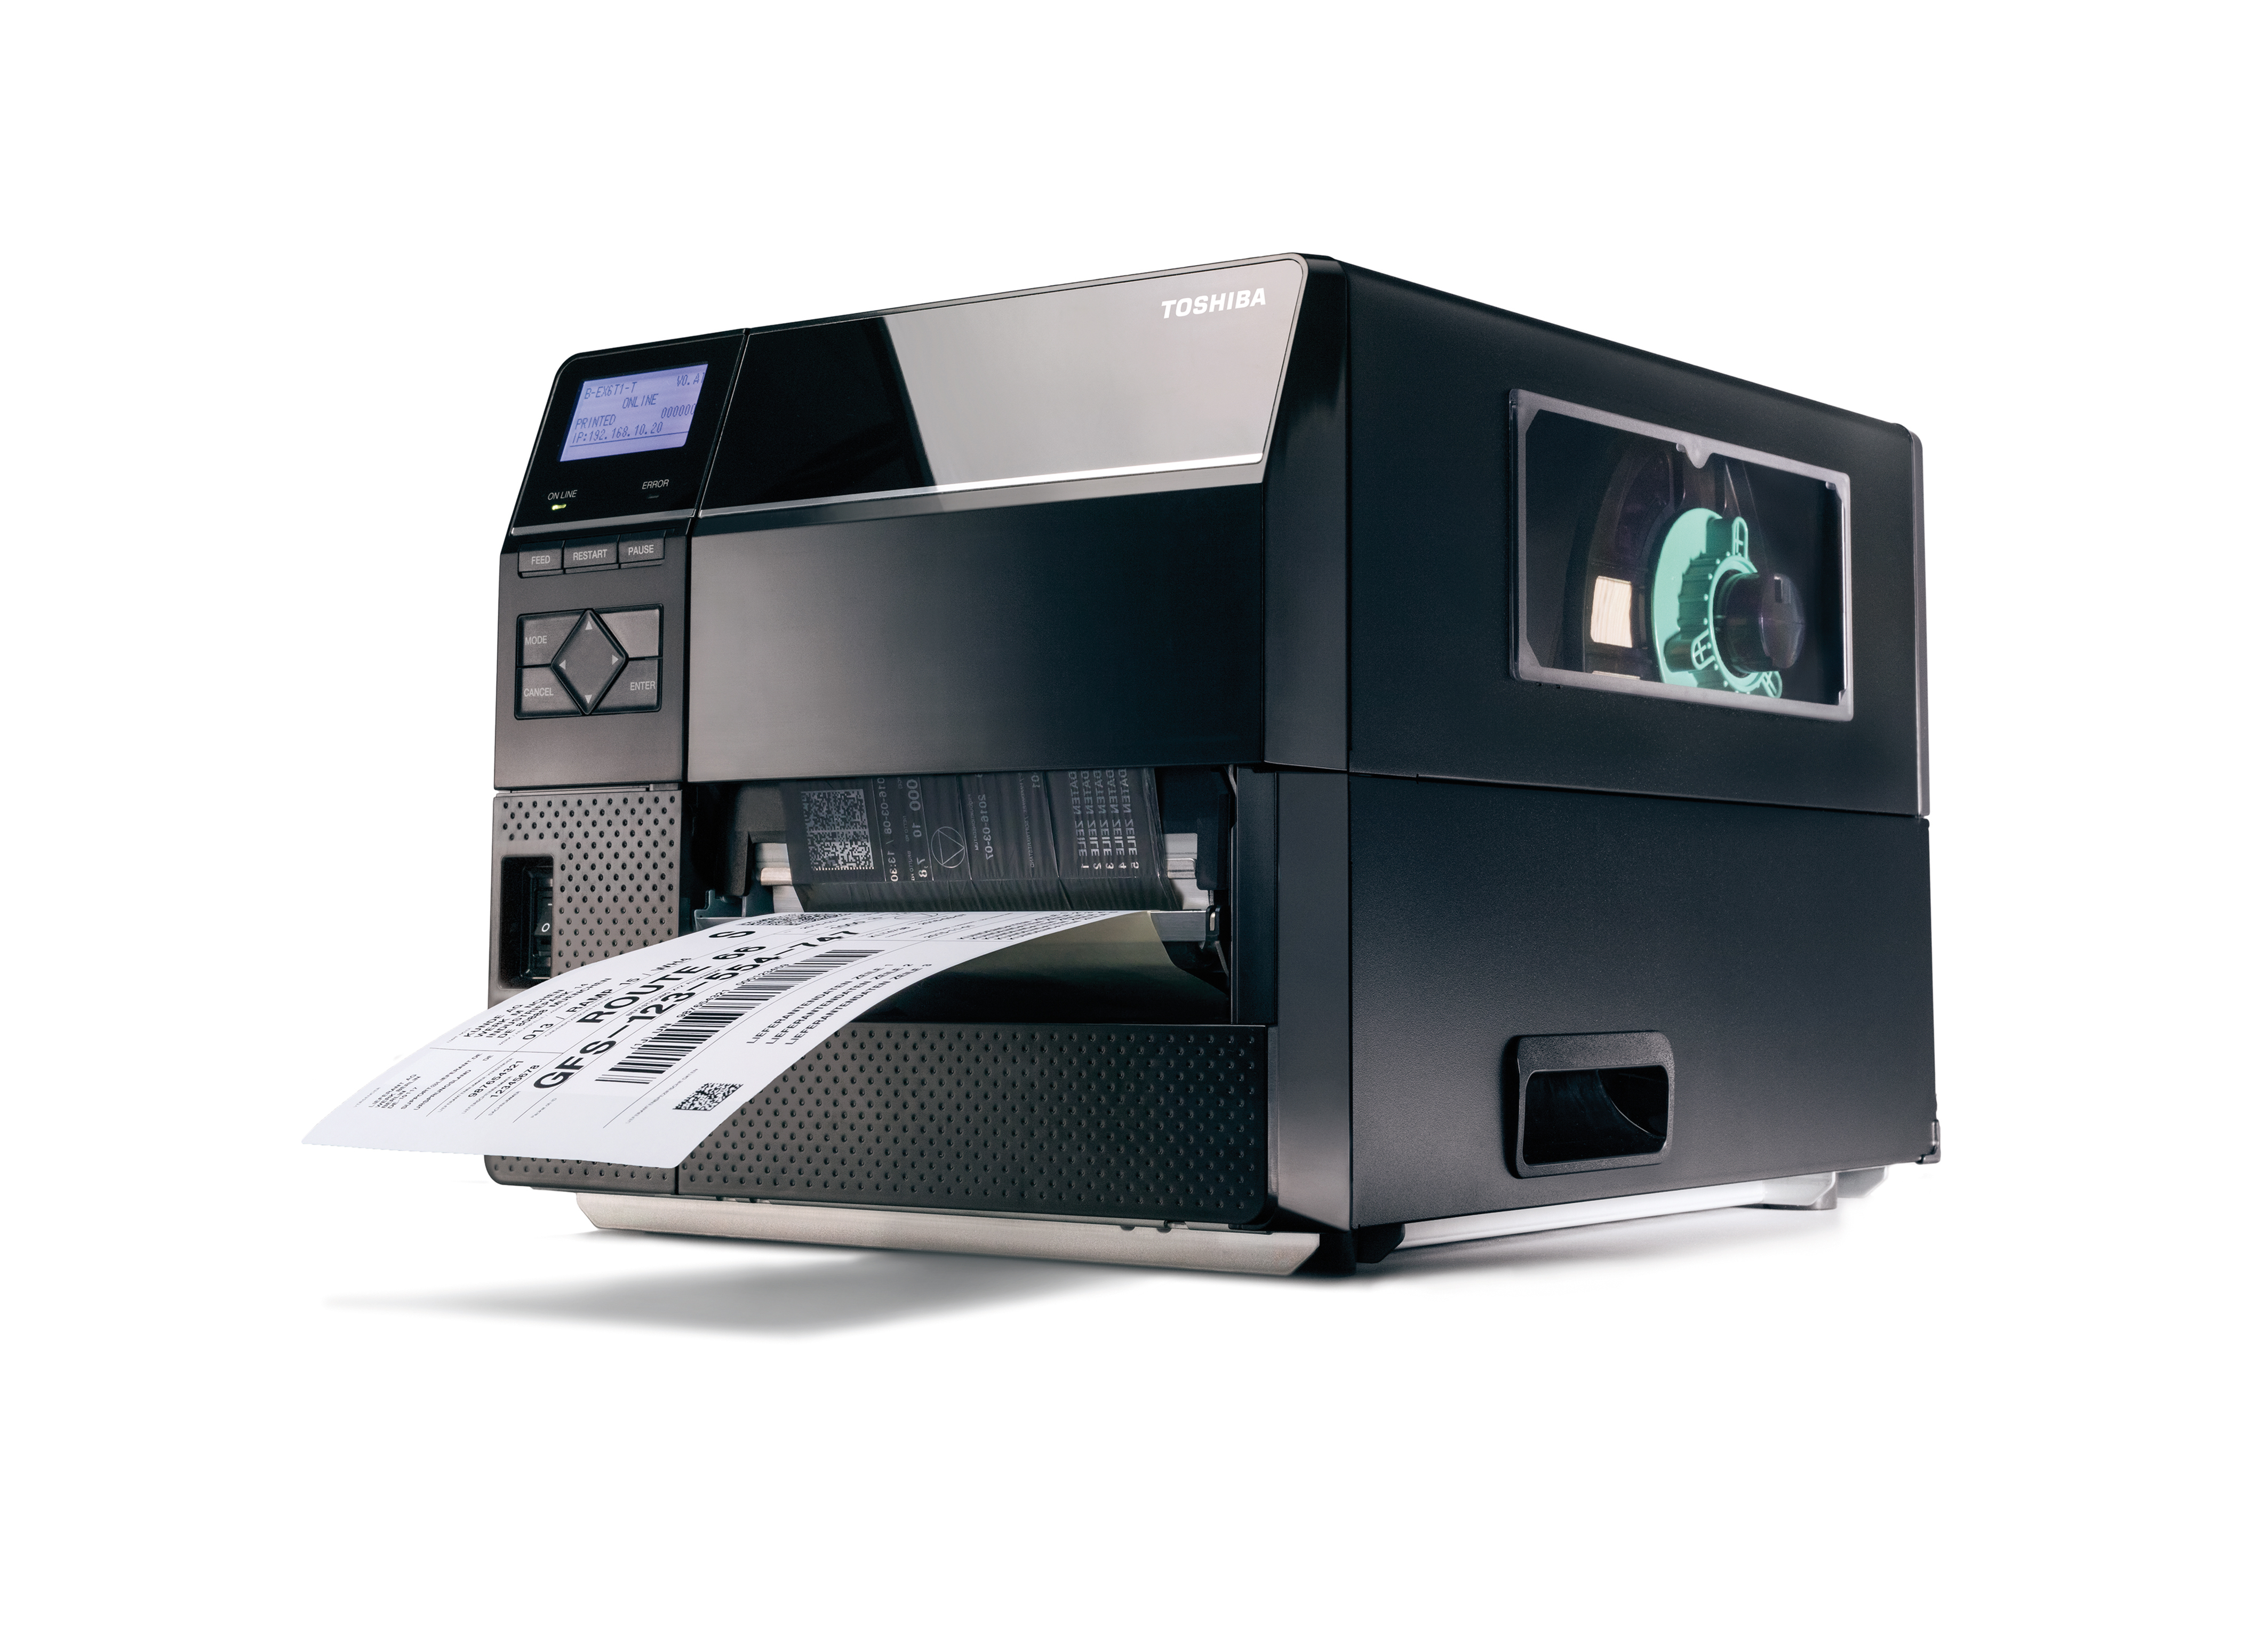 Toshiba Tec Corporation unveils its newly-developed, industrial label printer, B-EX6. The 6-inch width label printer implements Toshiba's state-of-the-art technology to help achieve elite performance with lower total cost of ownership. (Photo: Business Wire)